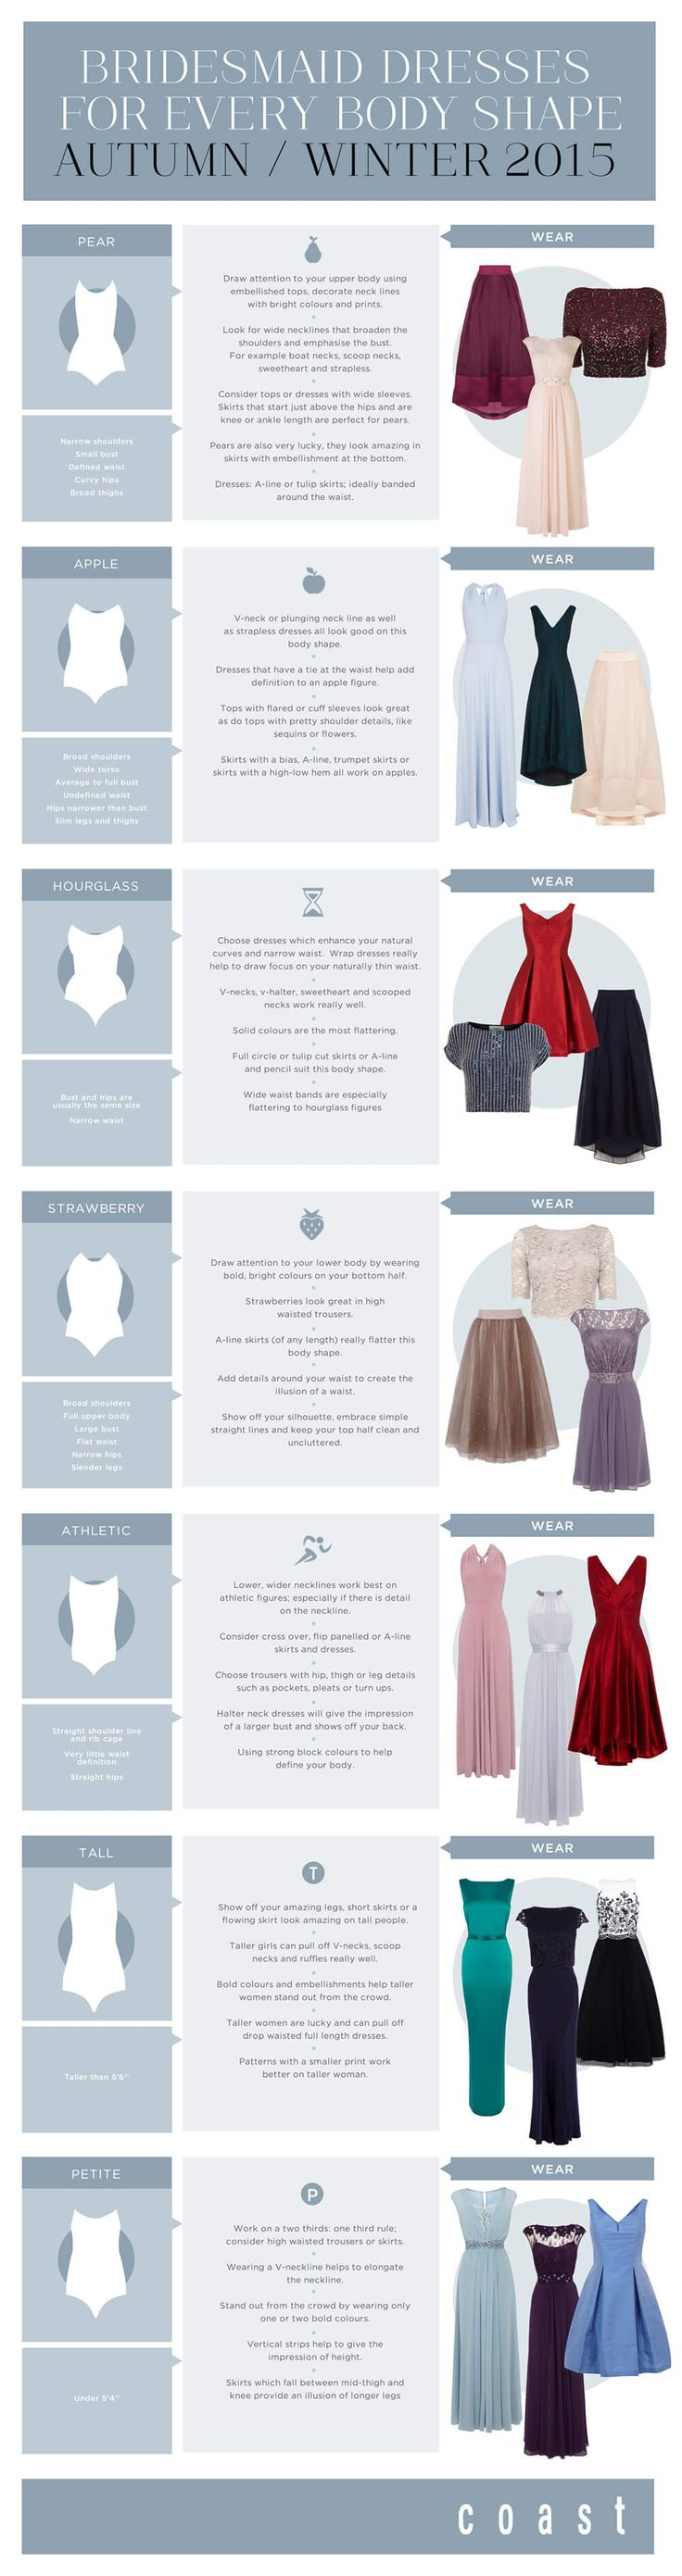 Bridesmaid Dresses For Every Body Type – KnotsVilla